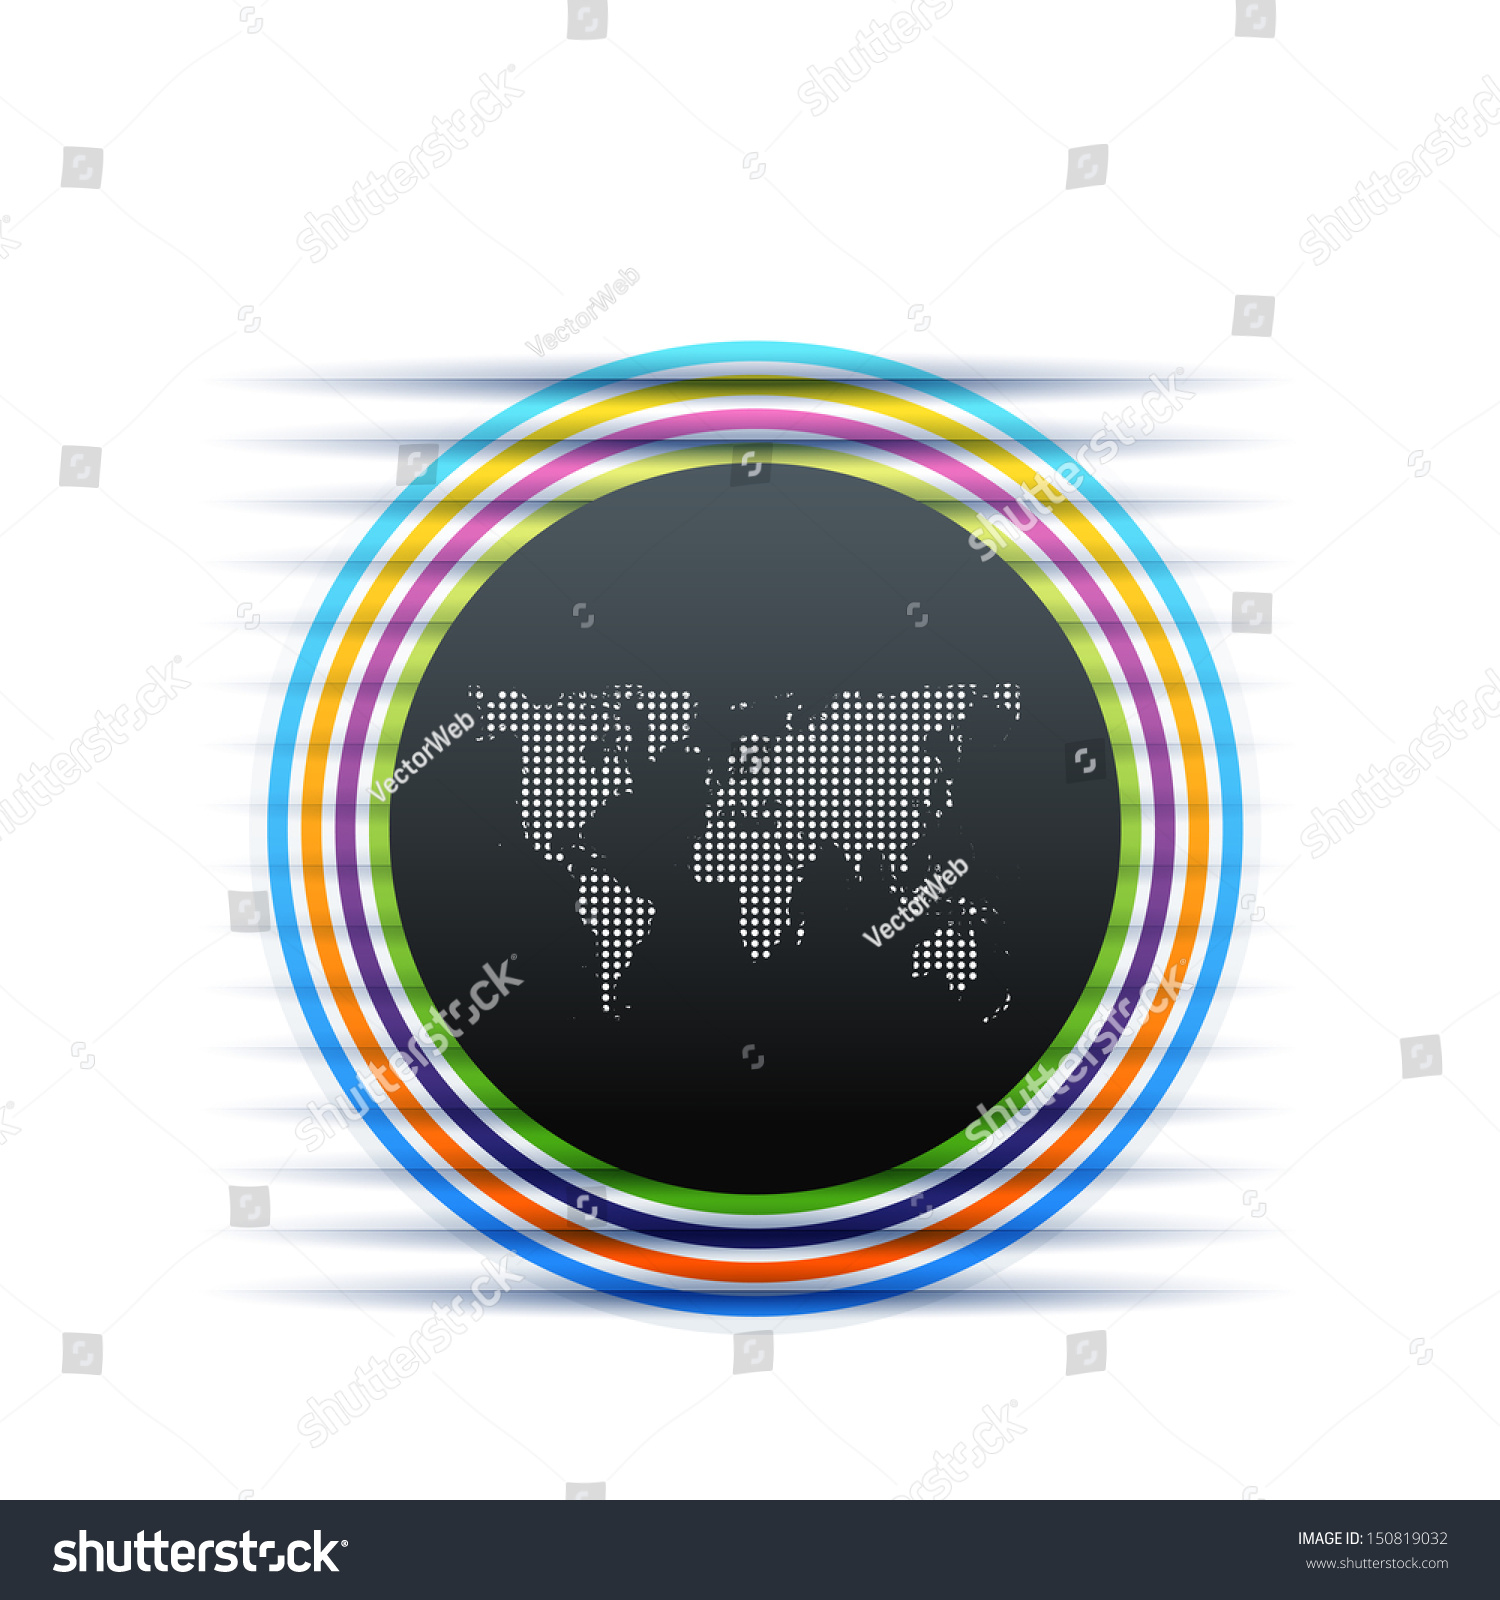 Abstract dot world map sticker stock vector 150819032 shutterstock abstract dot world map sticker gumiabroncs Images